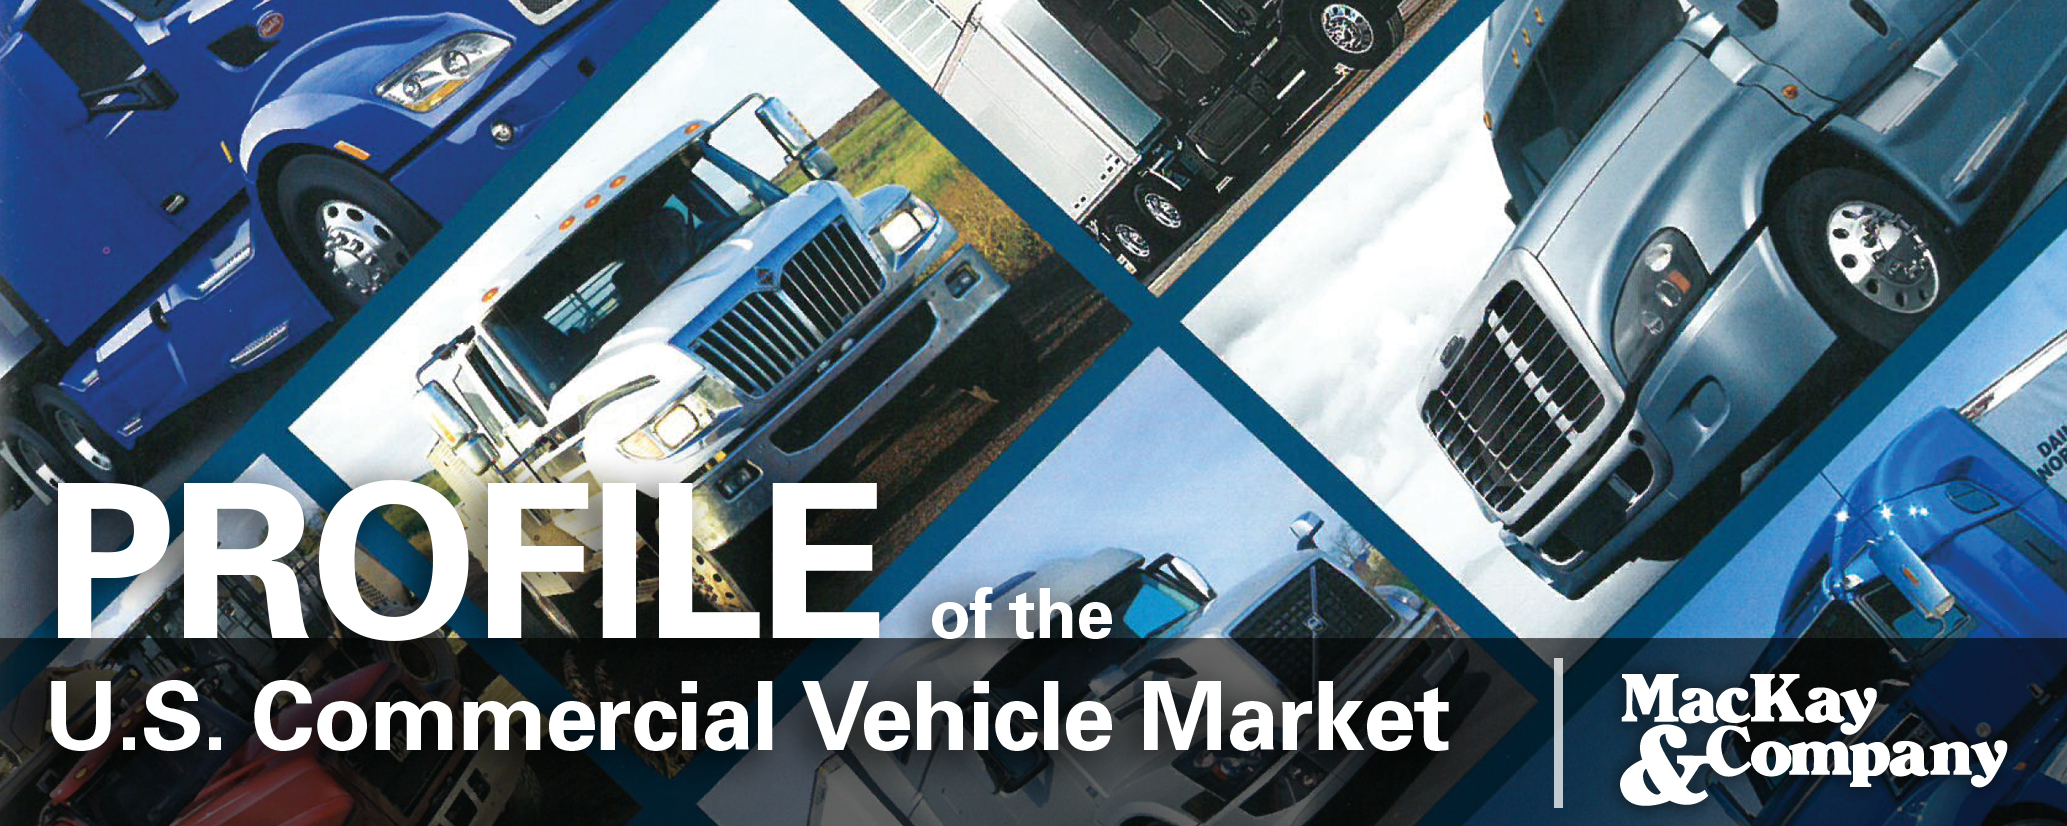 Profile of the U.S. Commercial Vehicle Market